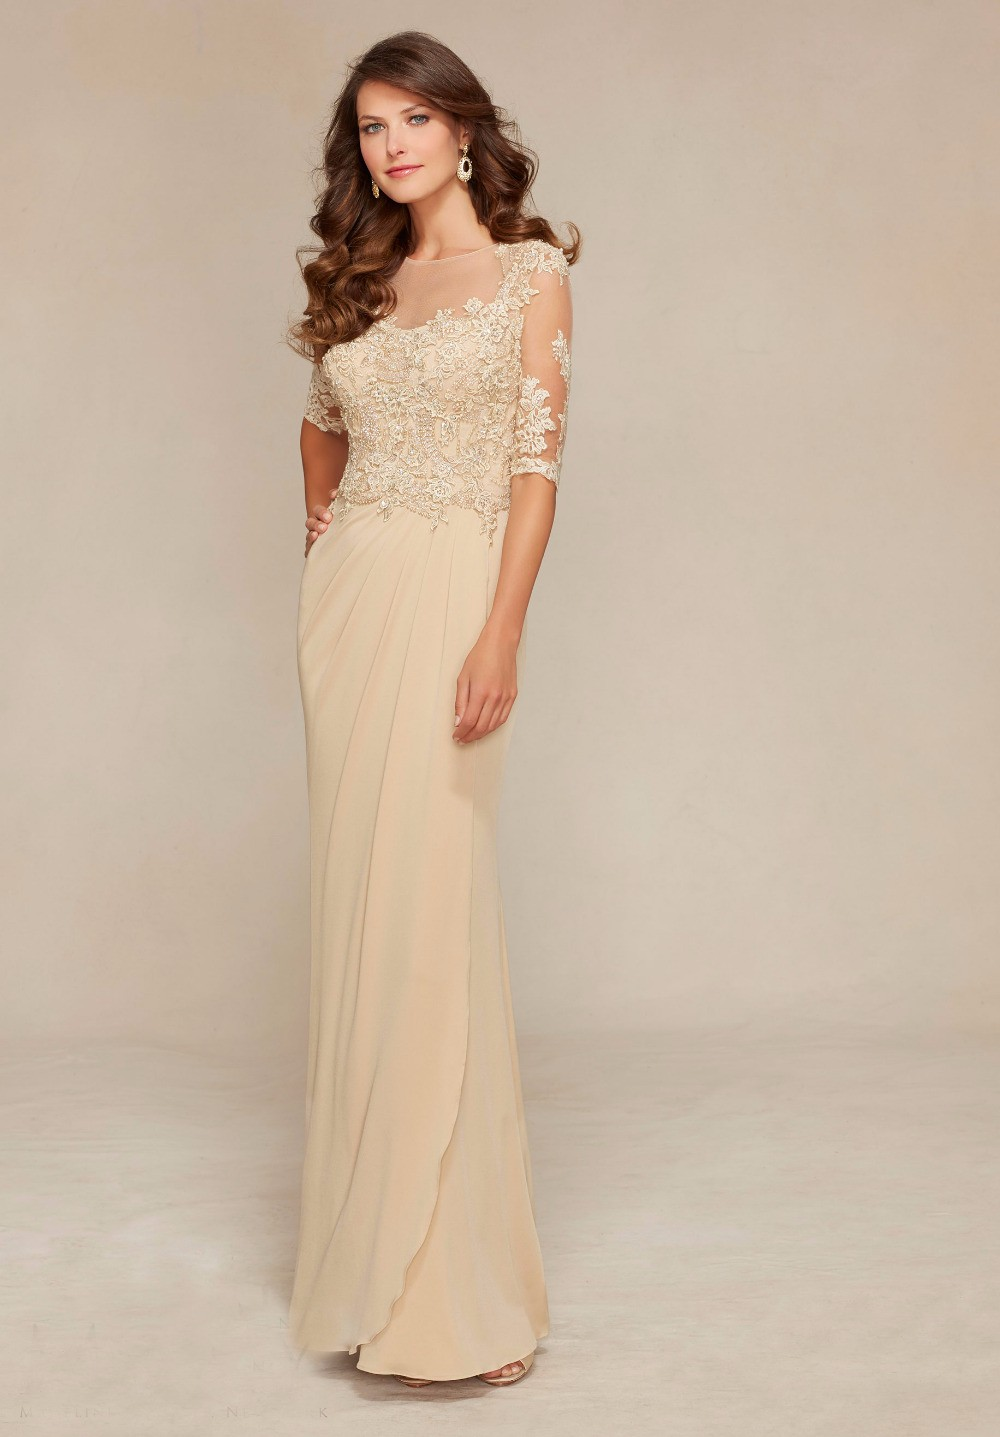 Custom-Made-Mother-Of-The-Bride-Dress-Gowns-Lace-Beading-Half-Sleeves-Godmother-Dresses-Trajes-de (2)